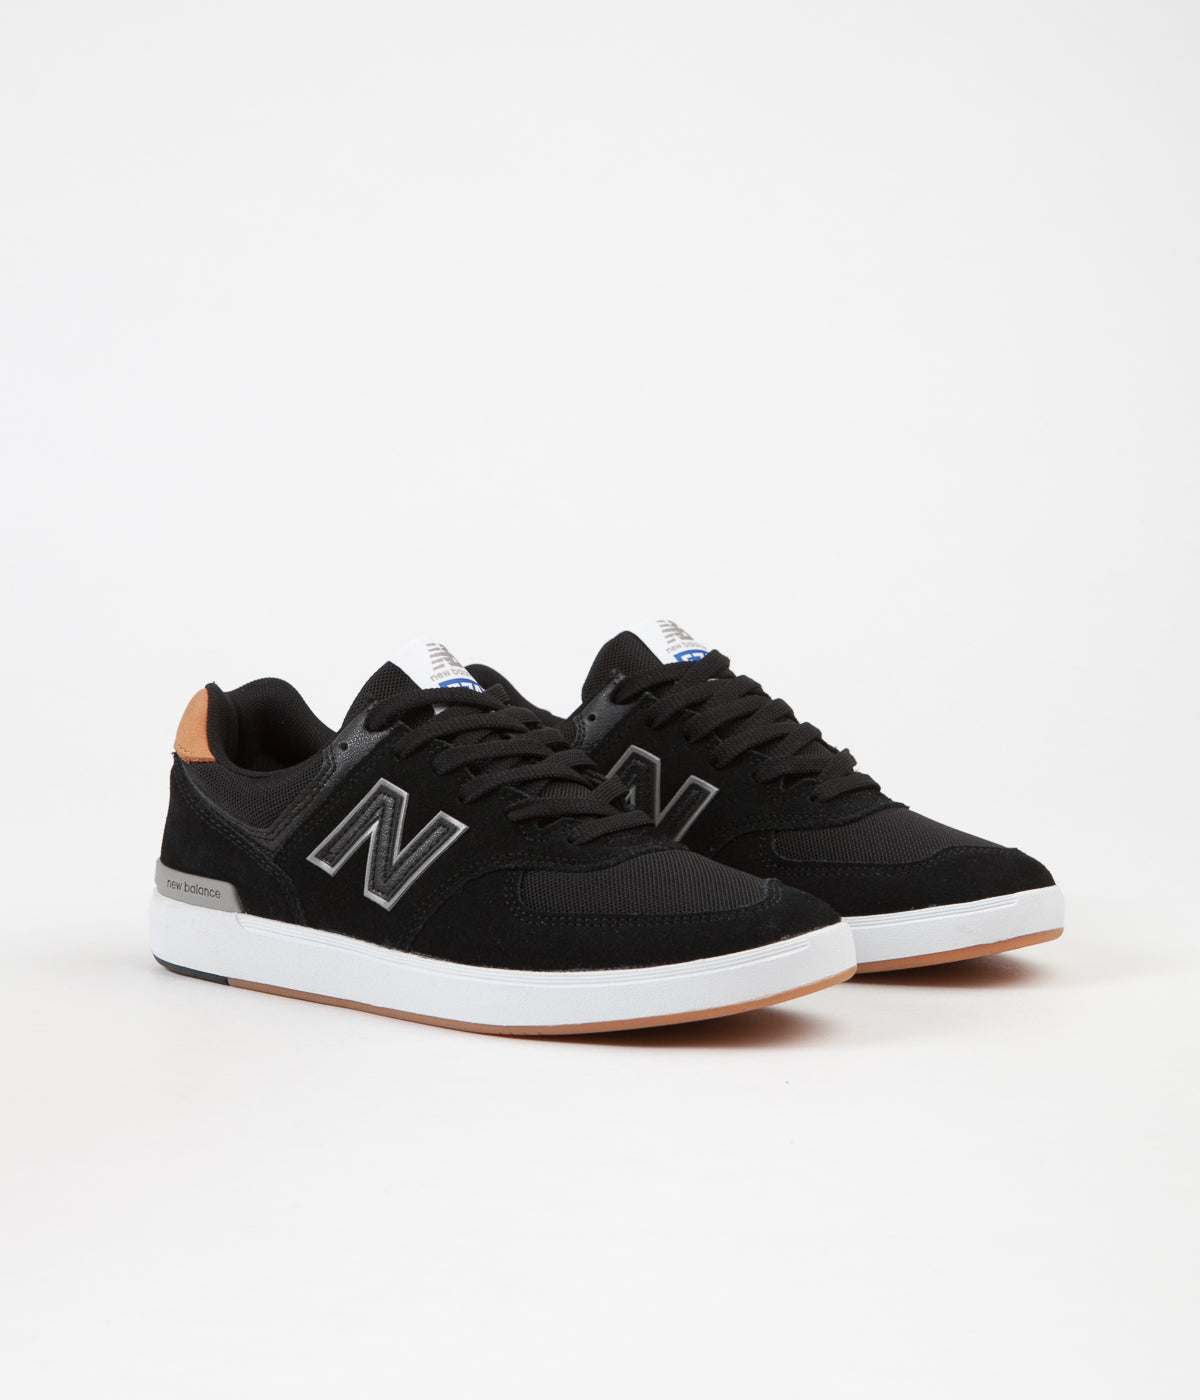 wholesale dealer 270bf 4eeed New Balance All Coasts 574 Shoes - Black | Flatspot